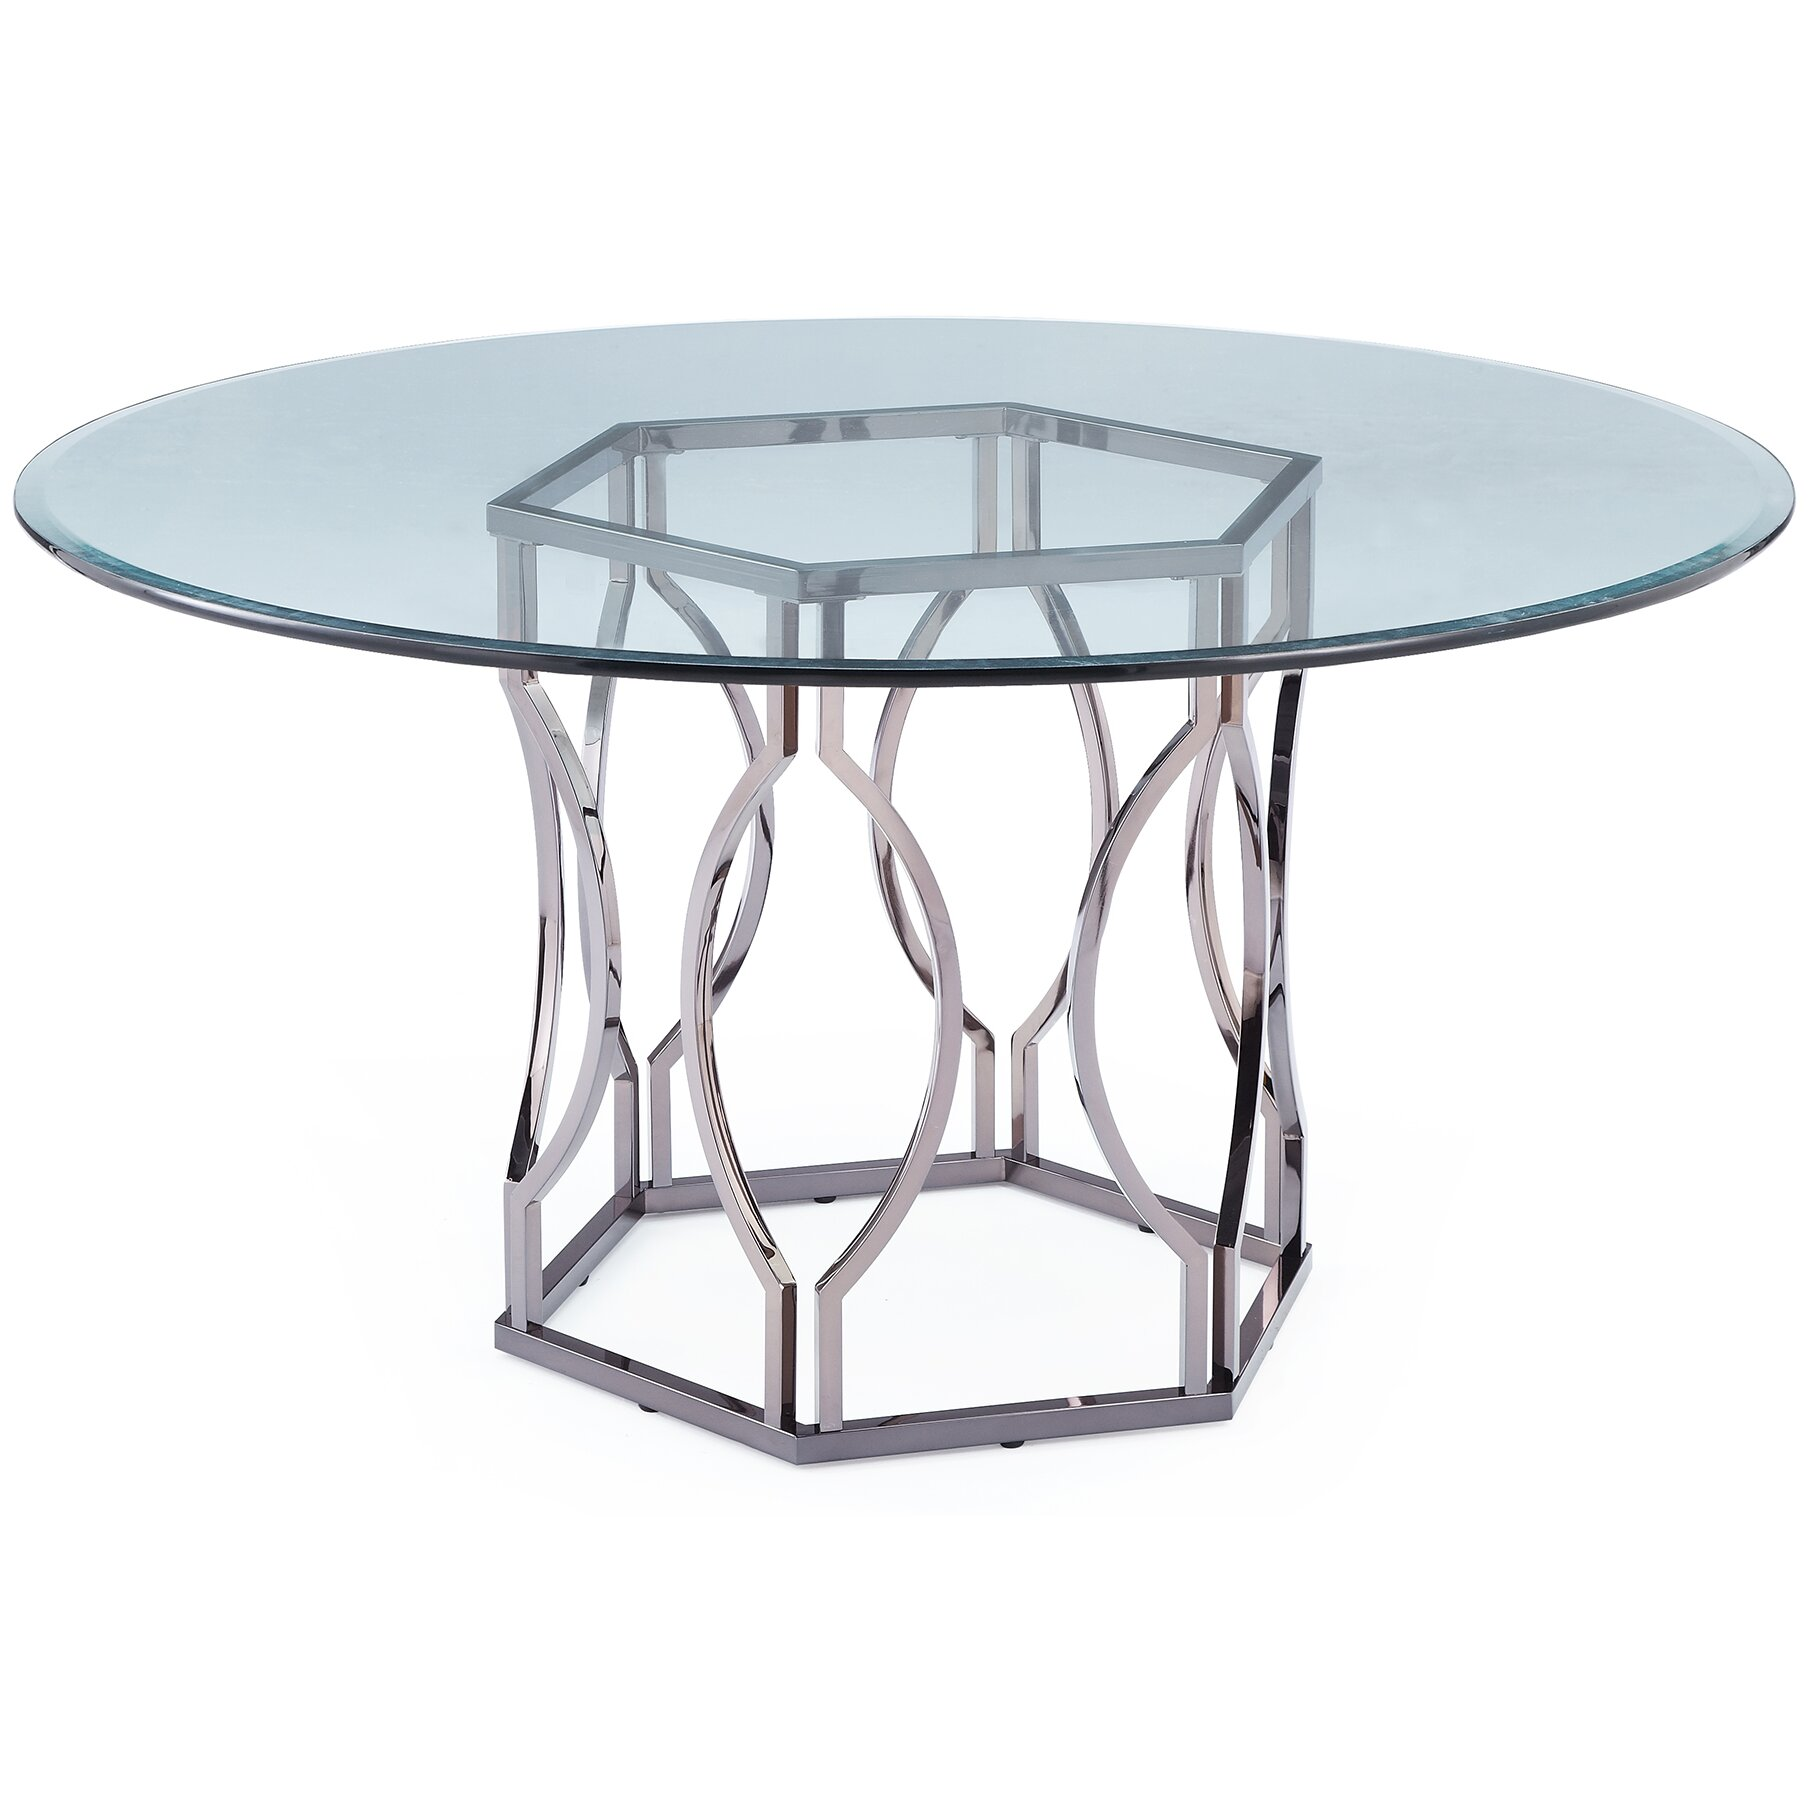 Mercer41 viggo round glass dining table reviews wayfair - Dining table images ...